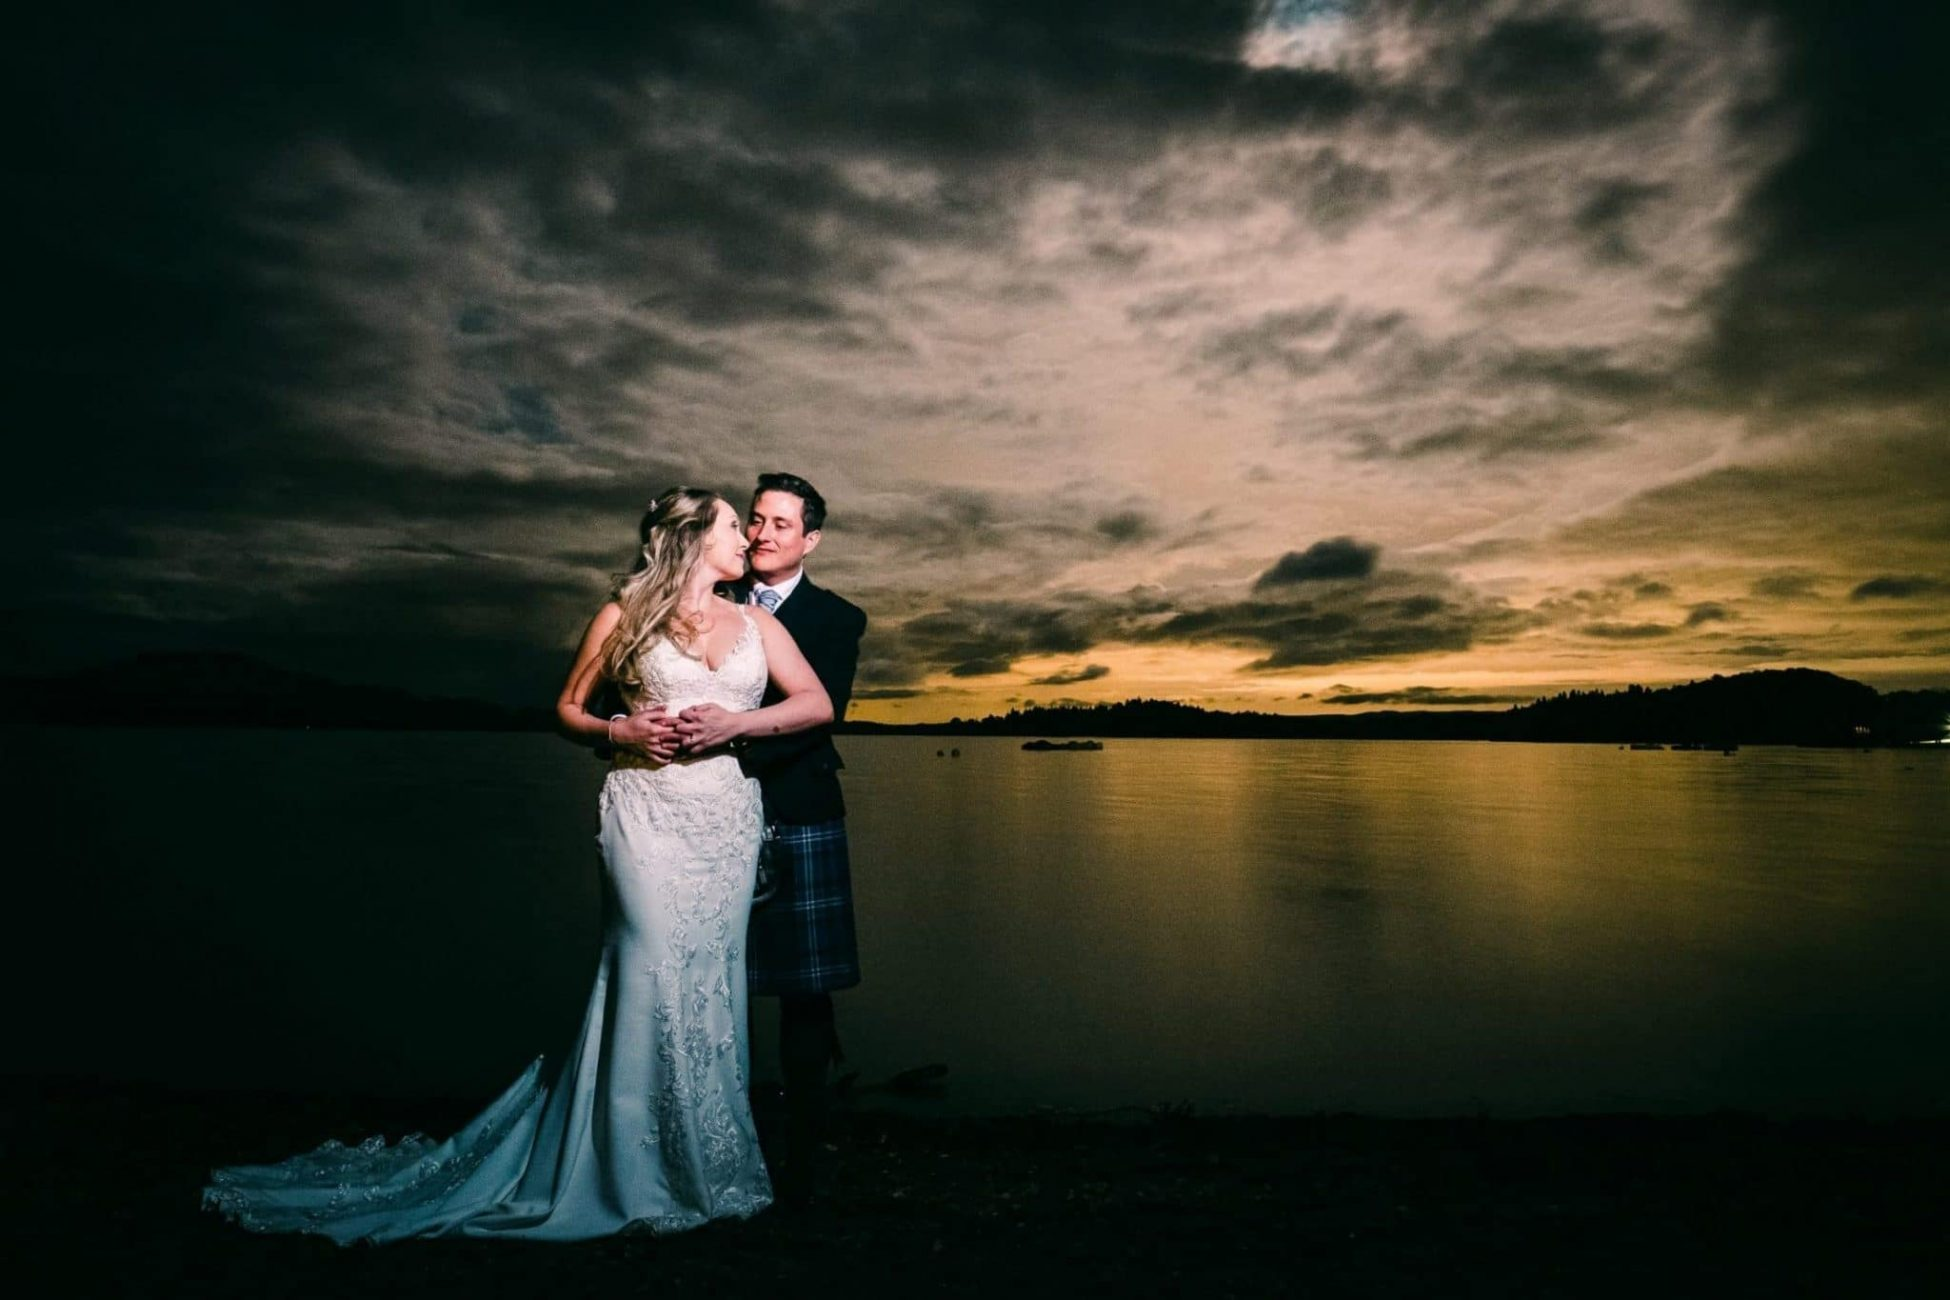 A wedding portrait at night at Loch Lomond